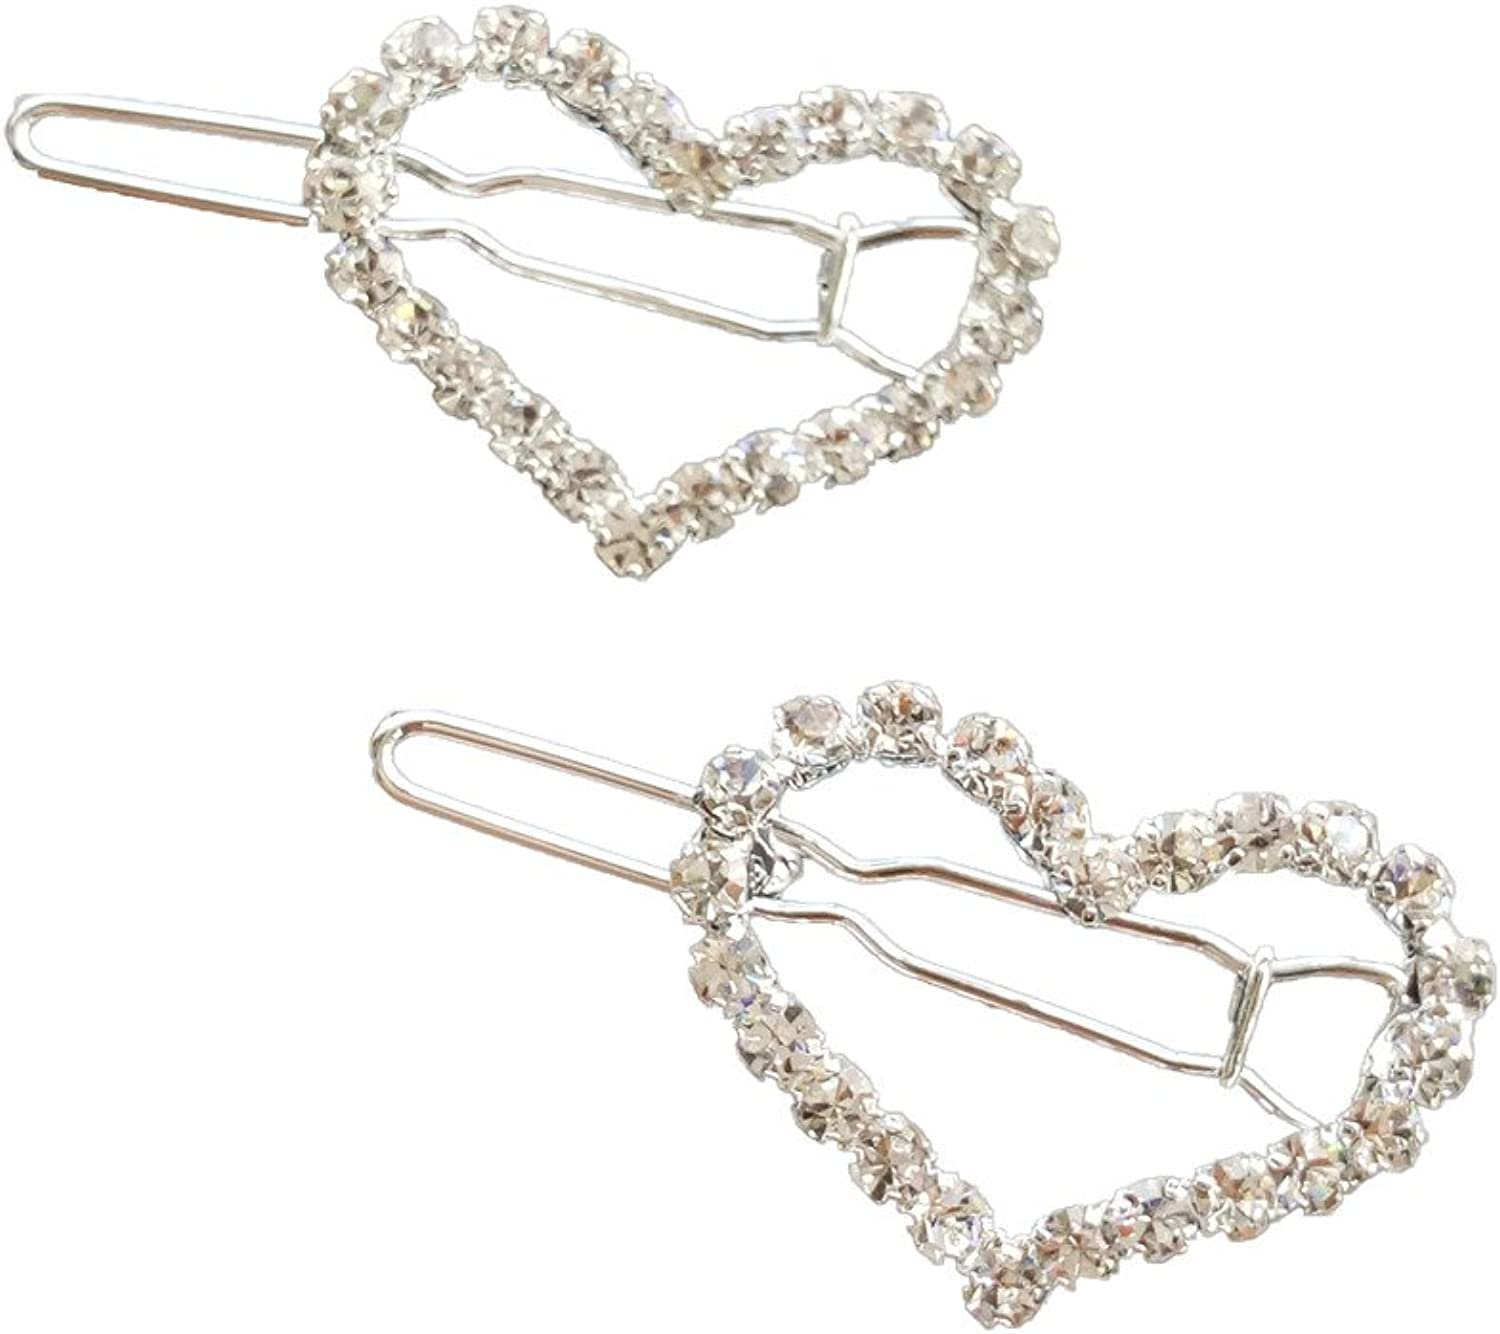 los últimos modelos PET SHOW Heart Heart Heart Bling Clear Crystal Rhinestone Girls Pet Cat Dog Frog Hair Clips Grooming Hair Accessories by PET SHOW  precios ultra bajos